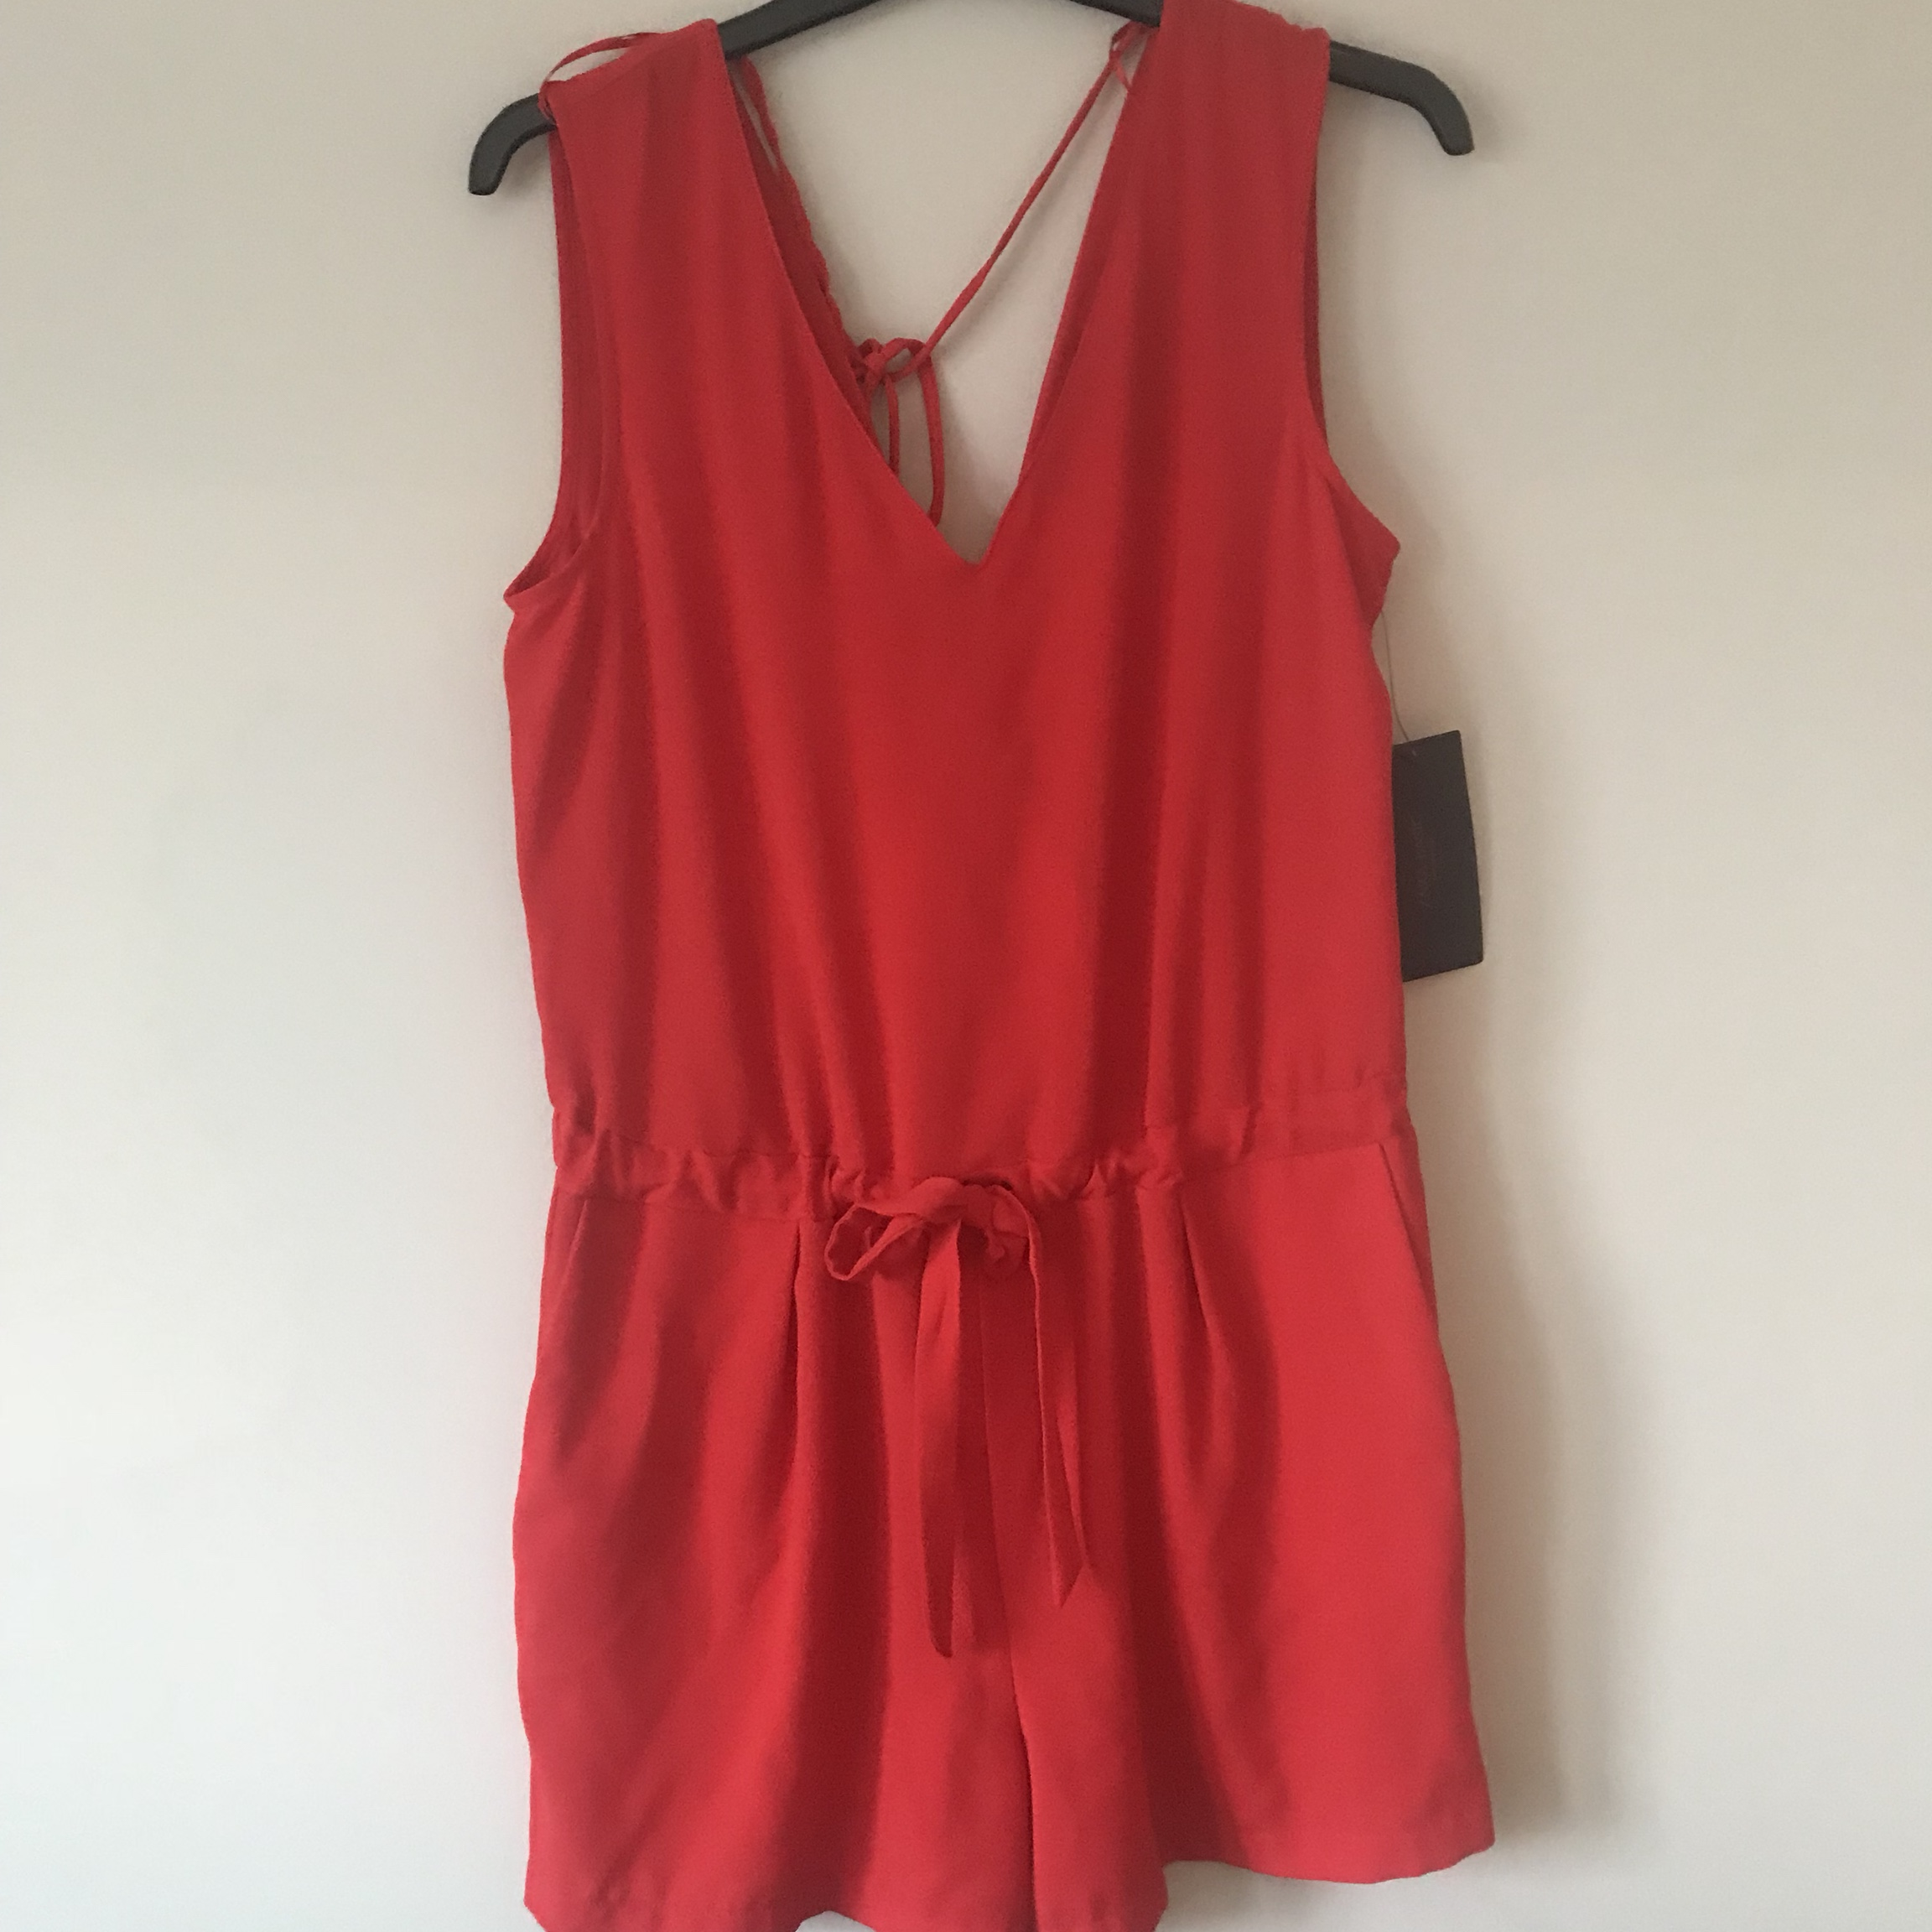 8eae7a071b2e Zara red tie waist backless playsuit perfect for holidays